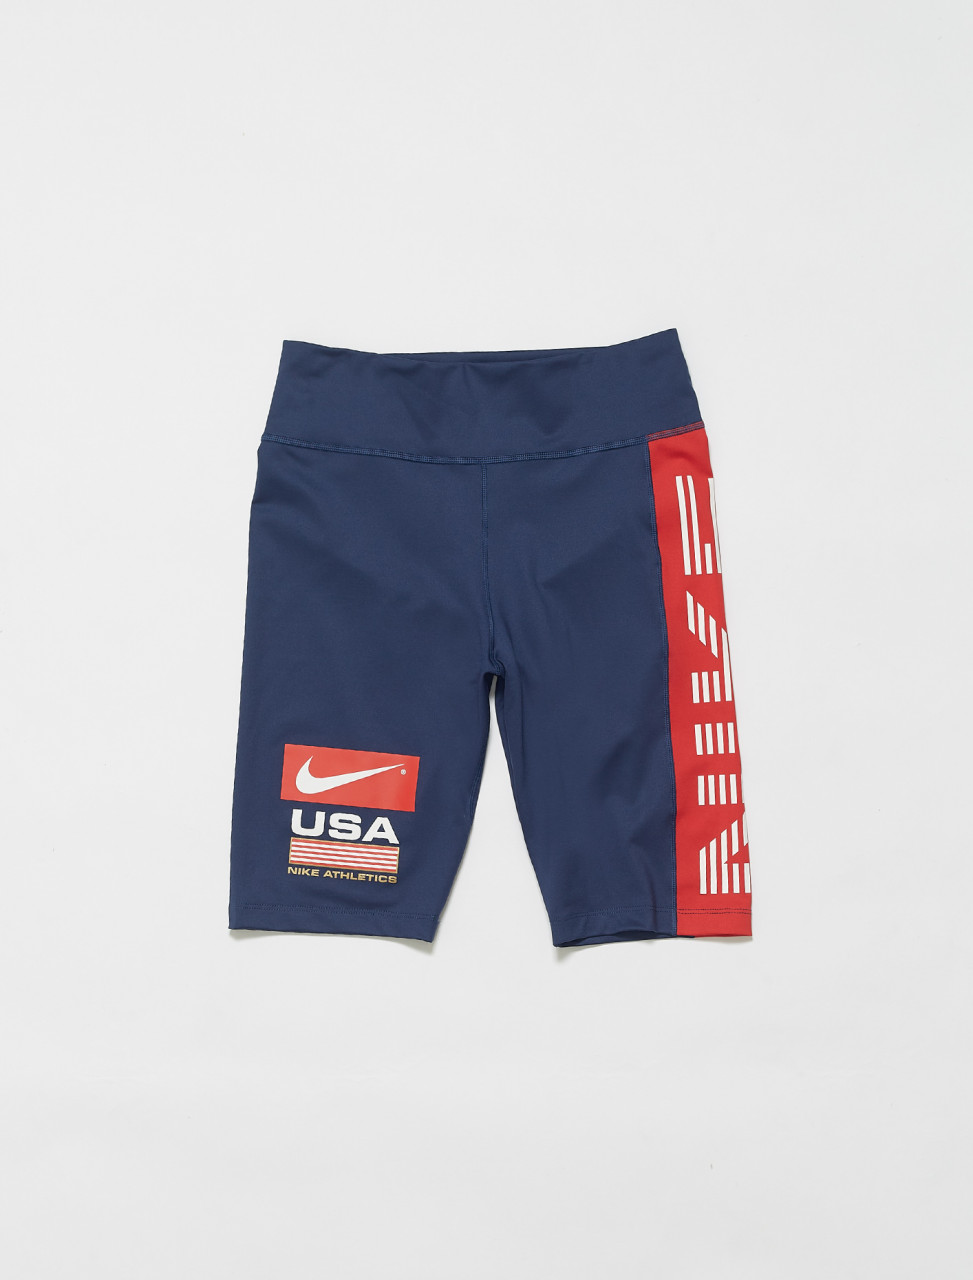 149-CK5244-410 NIKE USA BIKE SHORT MIDNIGHT NAVY UNIVERSITY RED BLACK